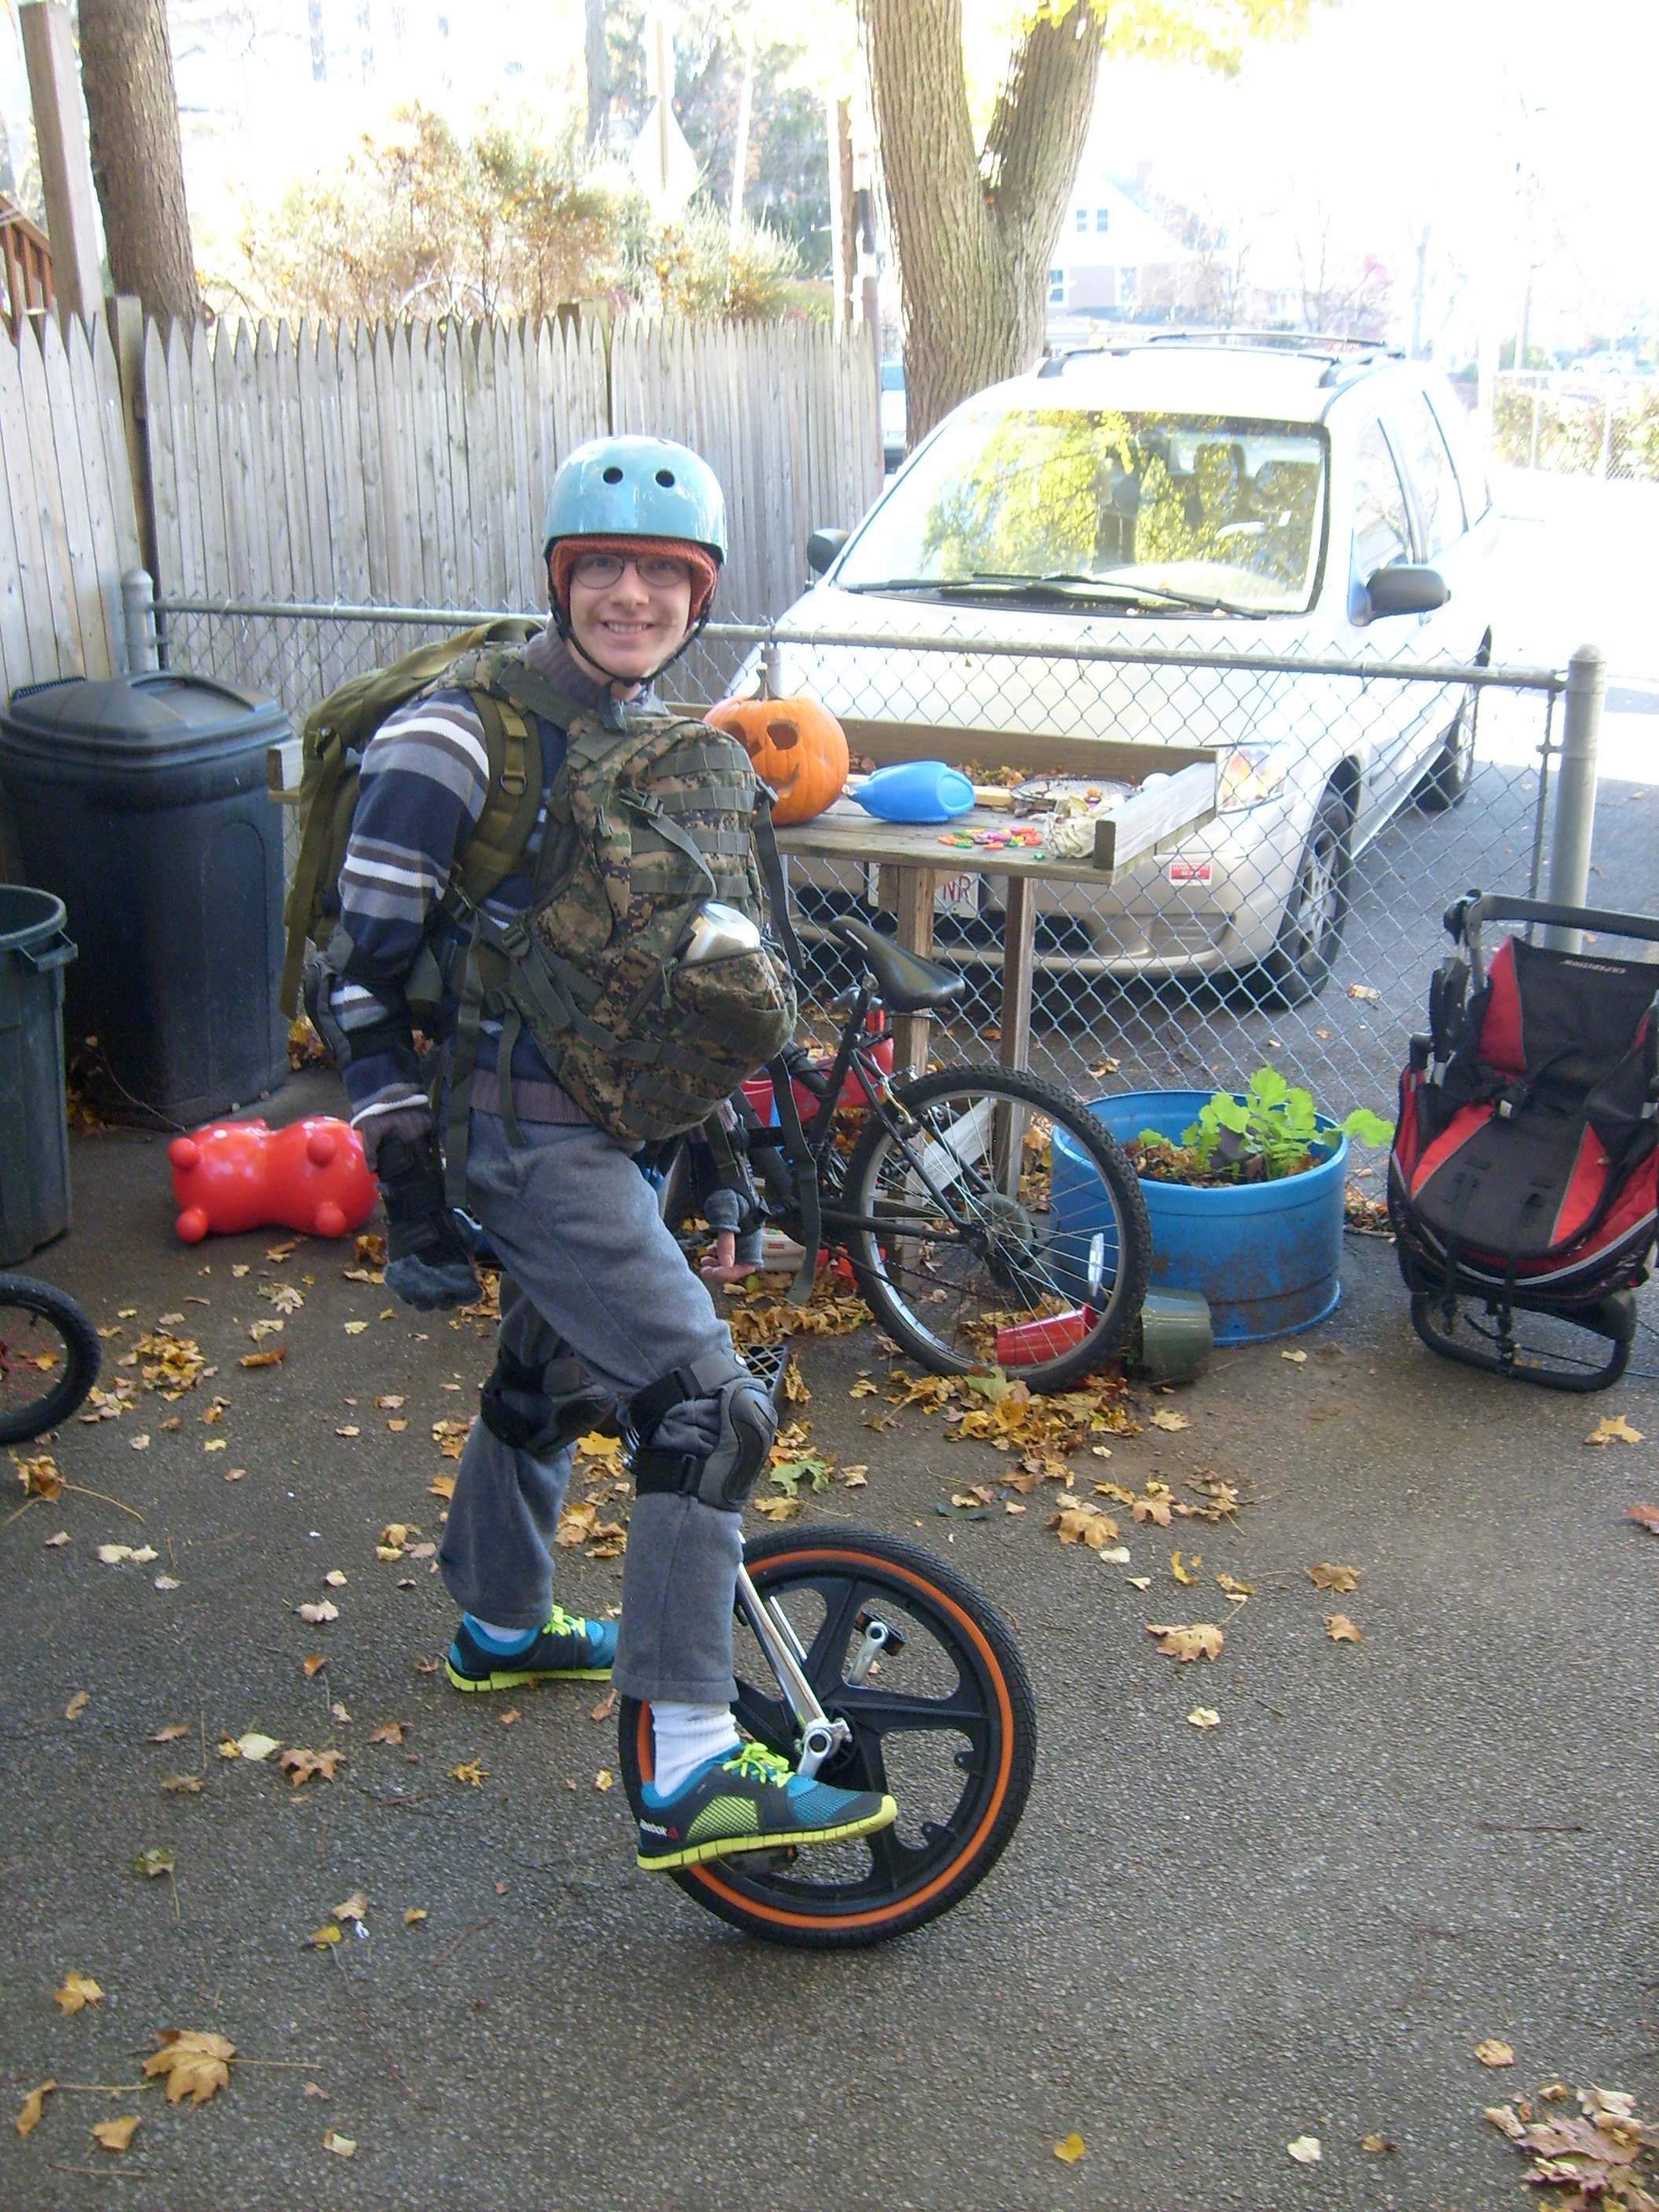 Ben wearing two backpacks and riding his unicycle